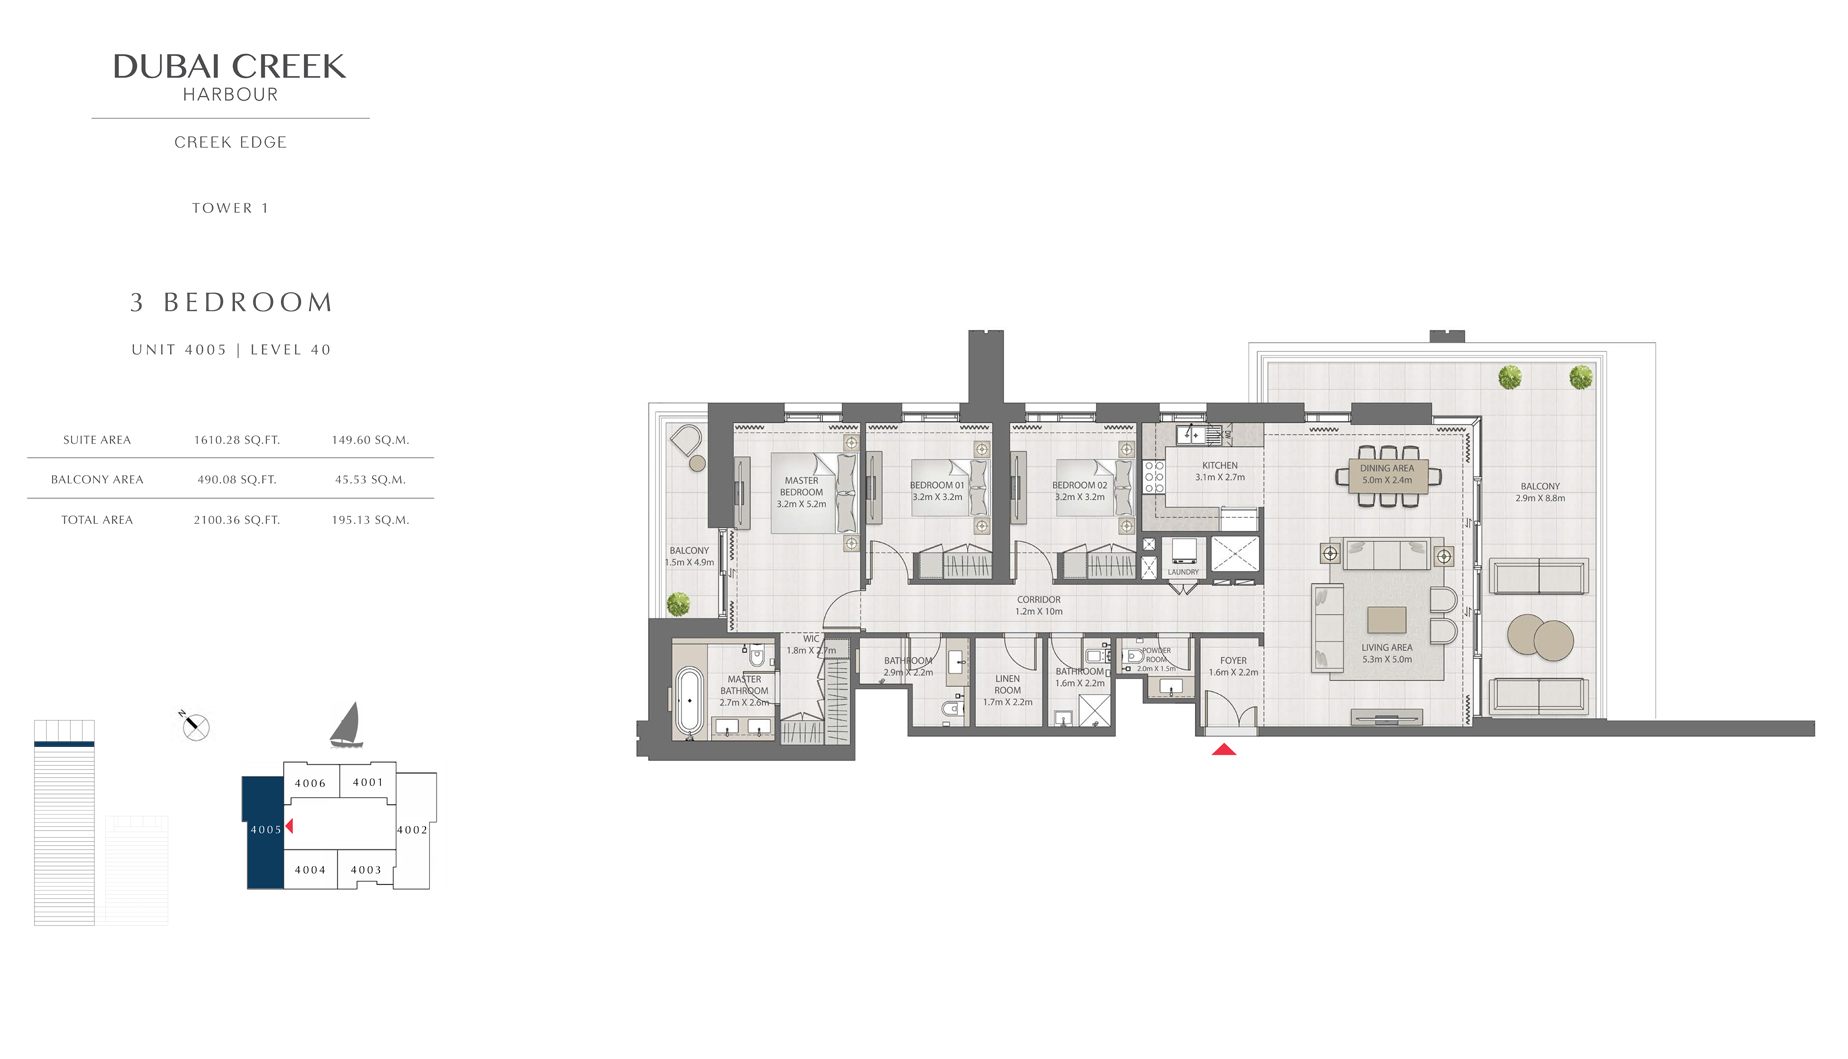 3 Bedroom Tower 1 Unit 4005 Level 40 Size 2100 sq.ft